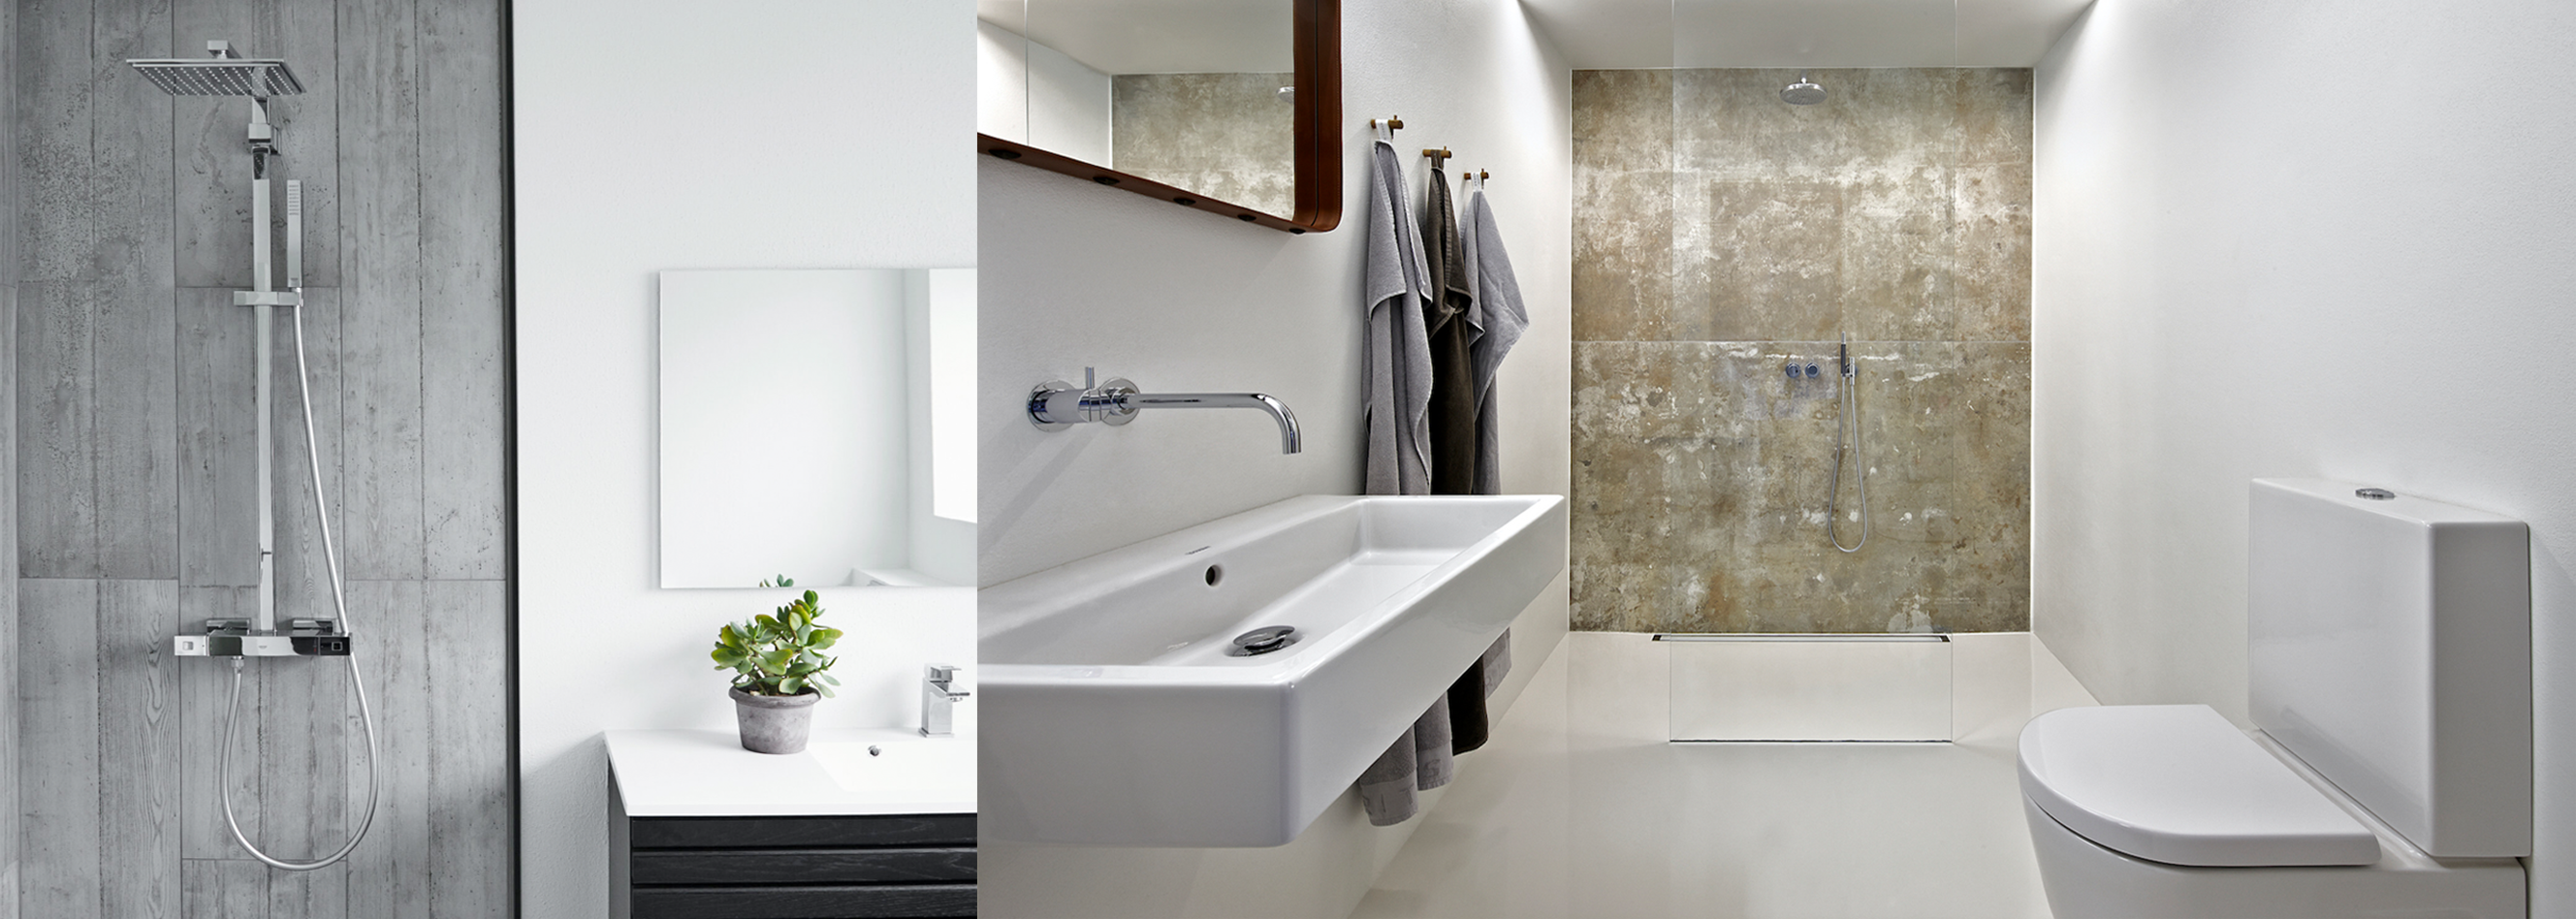 square fixtures in a wet room